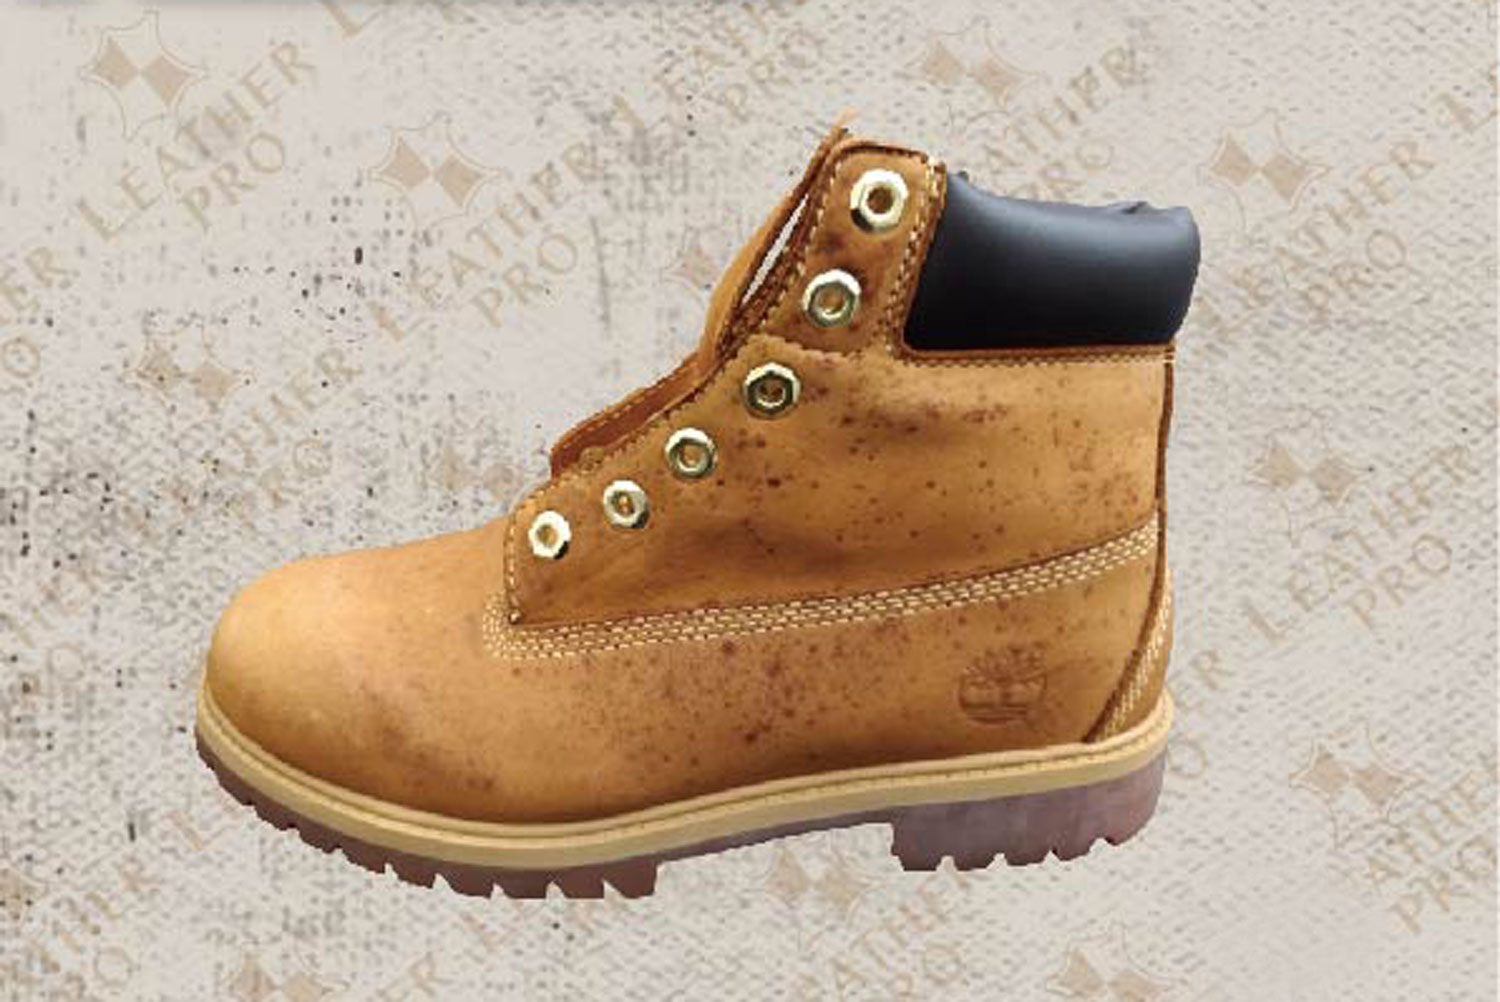 https://leather-pro.com/wp-content/uploads/2019/03/Timberland-hiking-boots_before_1500.jpg